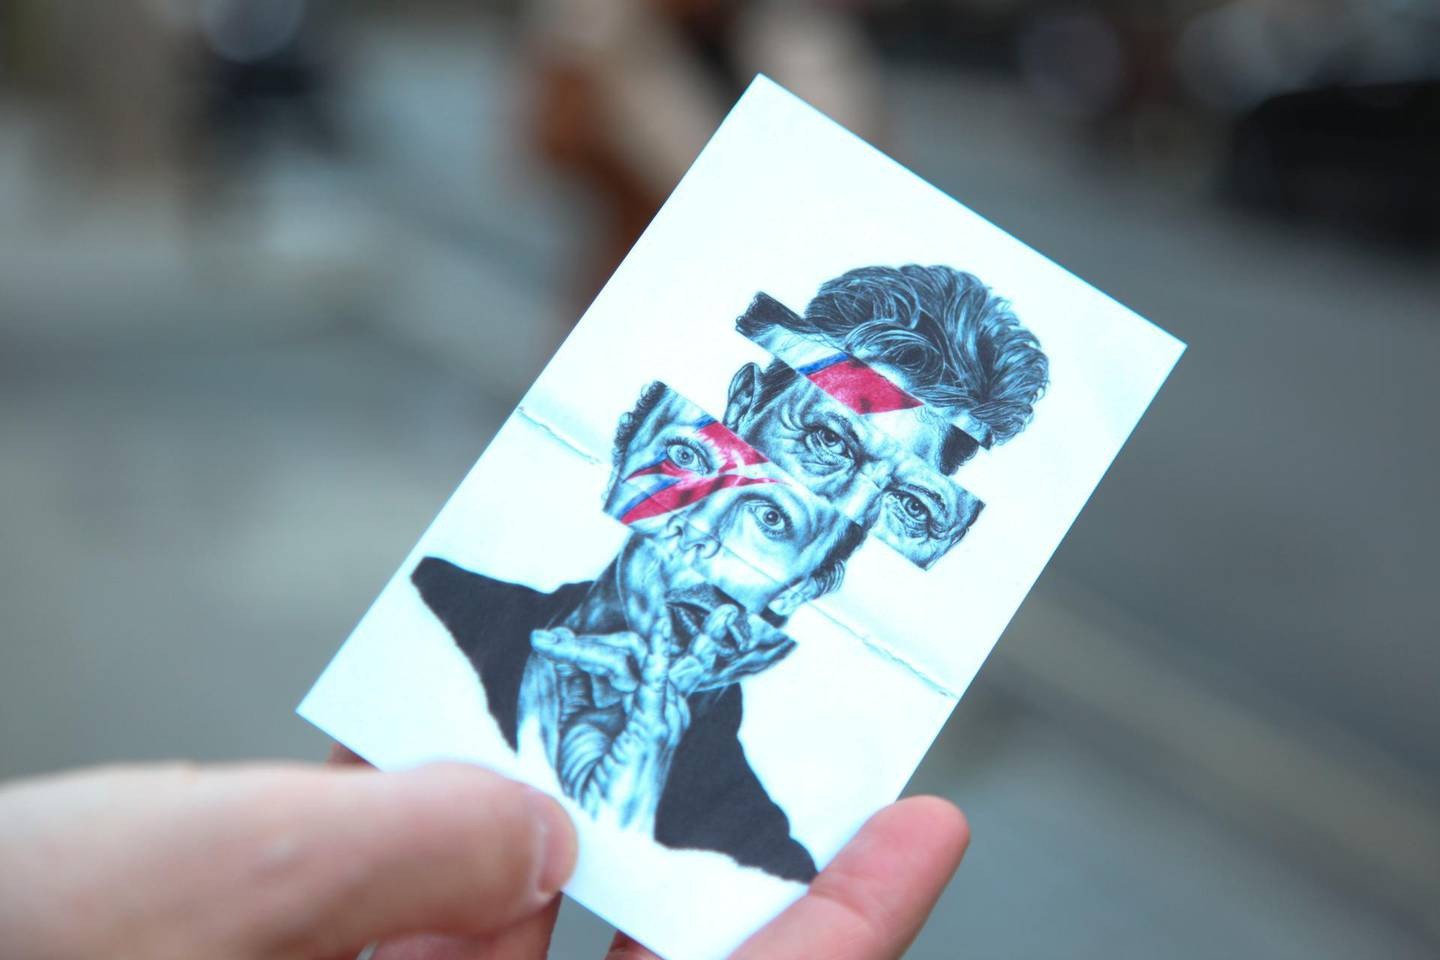 An art card, given to donors making contactless payments to homeless charities by the company TAP London in London, United Kingdom on January 4, 2018. Thomson Reuter Foundation / Cormac O'Brien